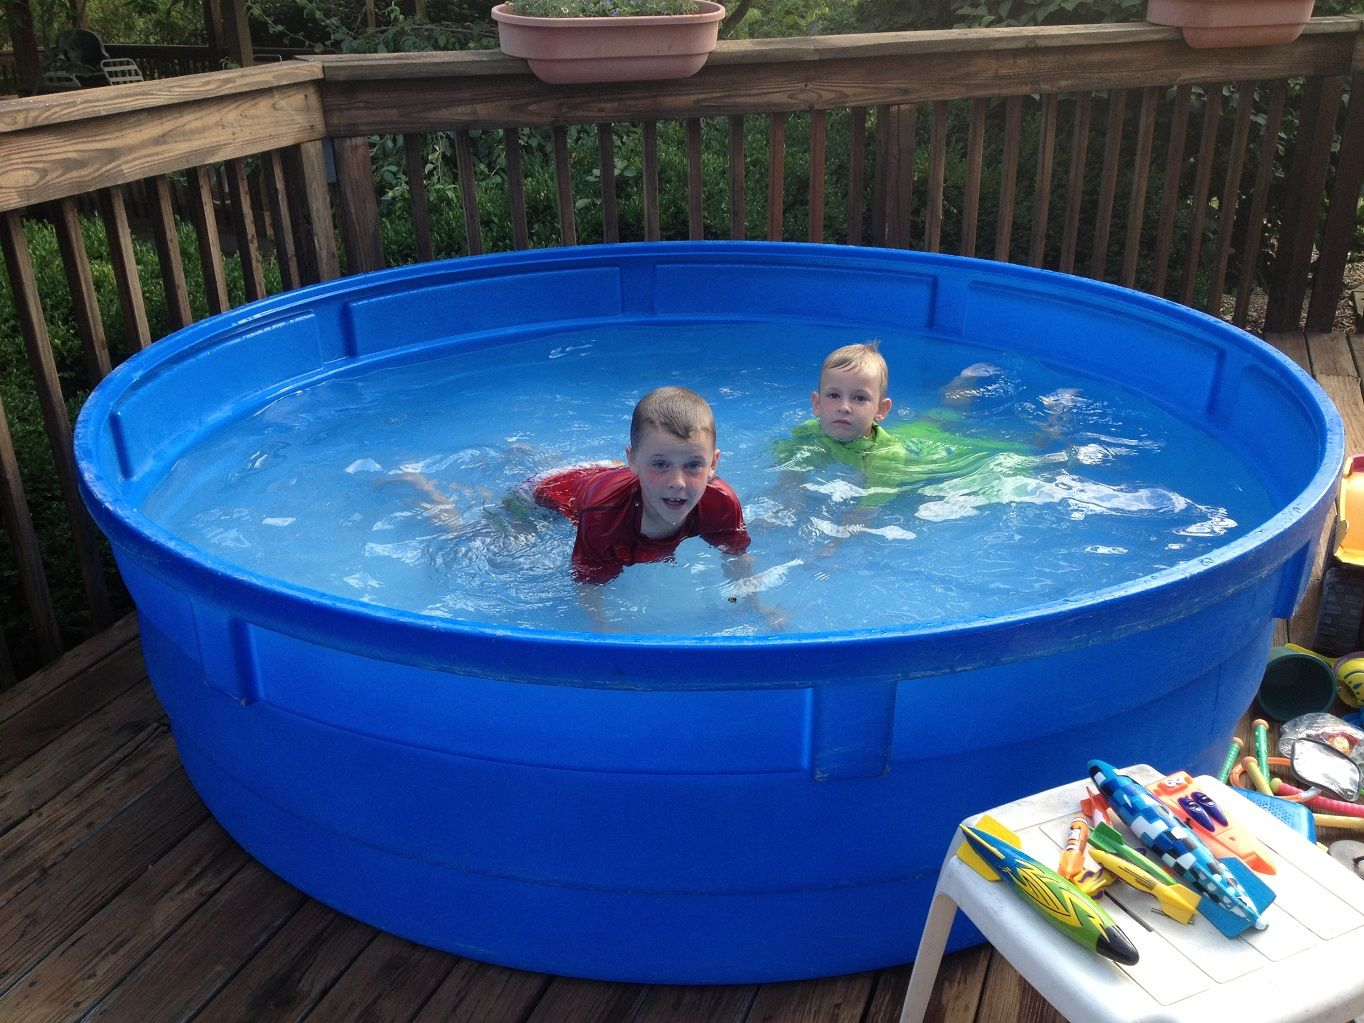 Exciting Pools Walmart For Enjoyable Outdoor Swimming Pool Ideas Endearing Blue Round Hard